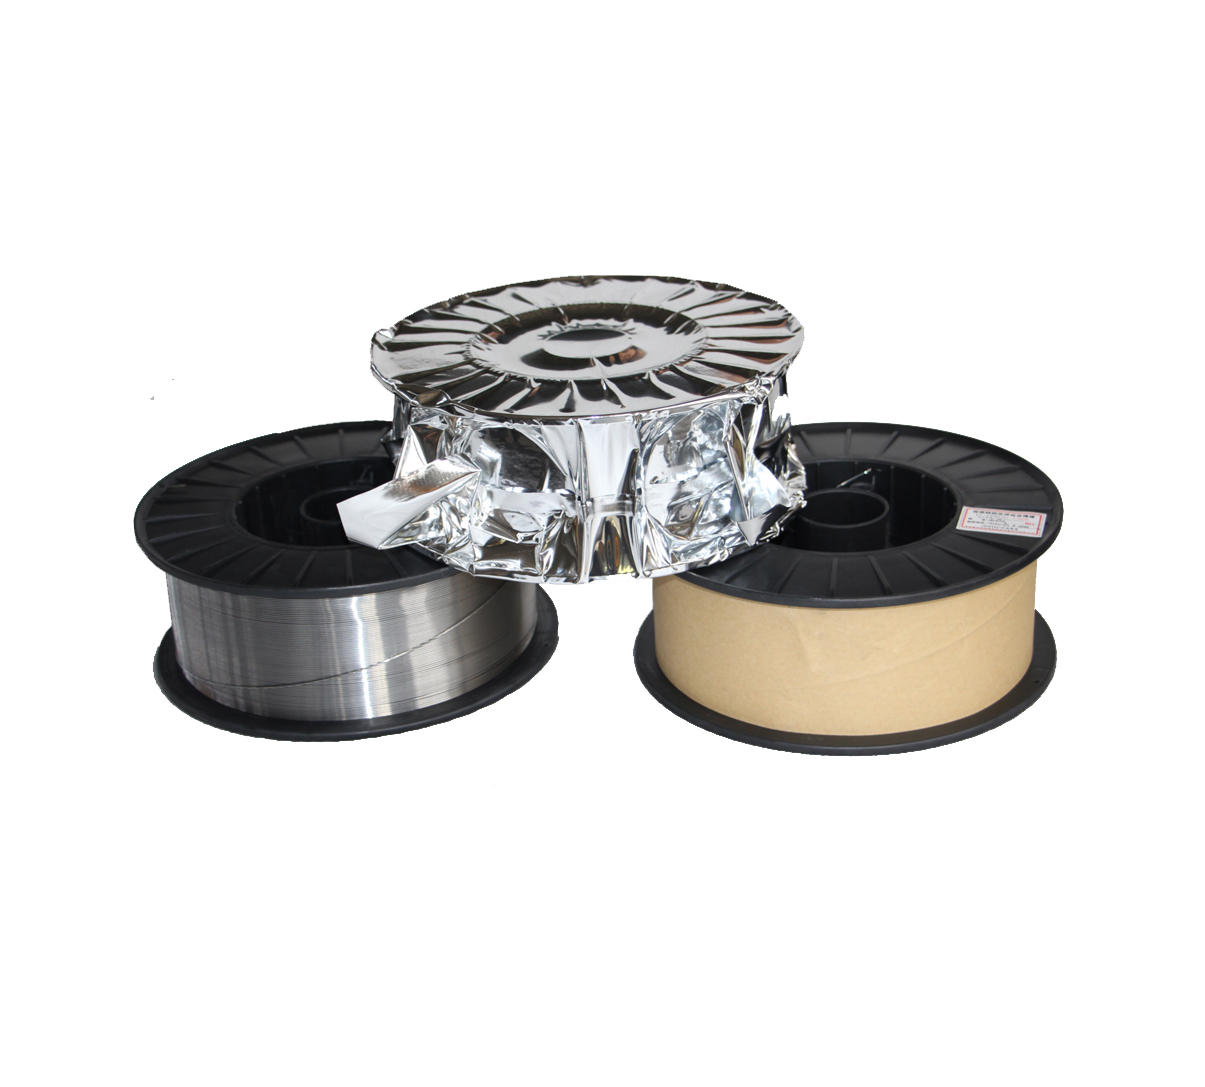 E71T-GS Self-shielded flux cored welding wire